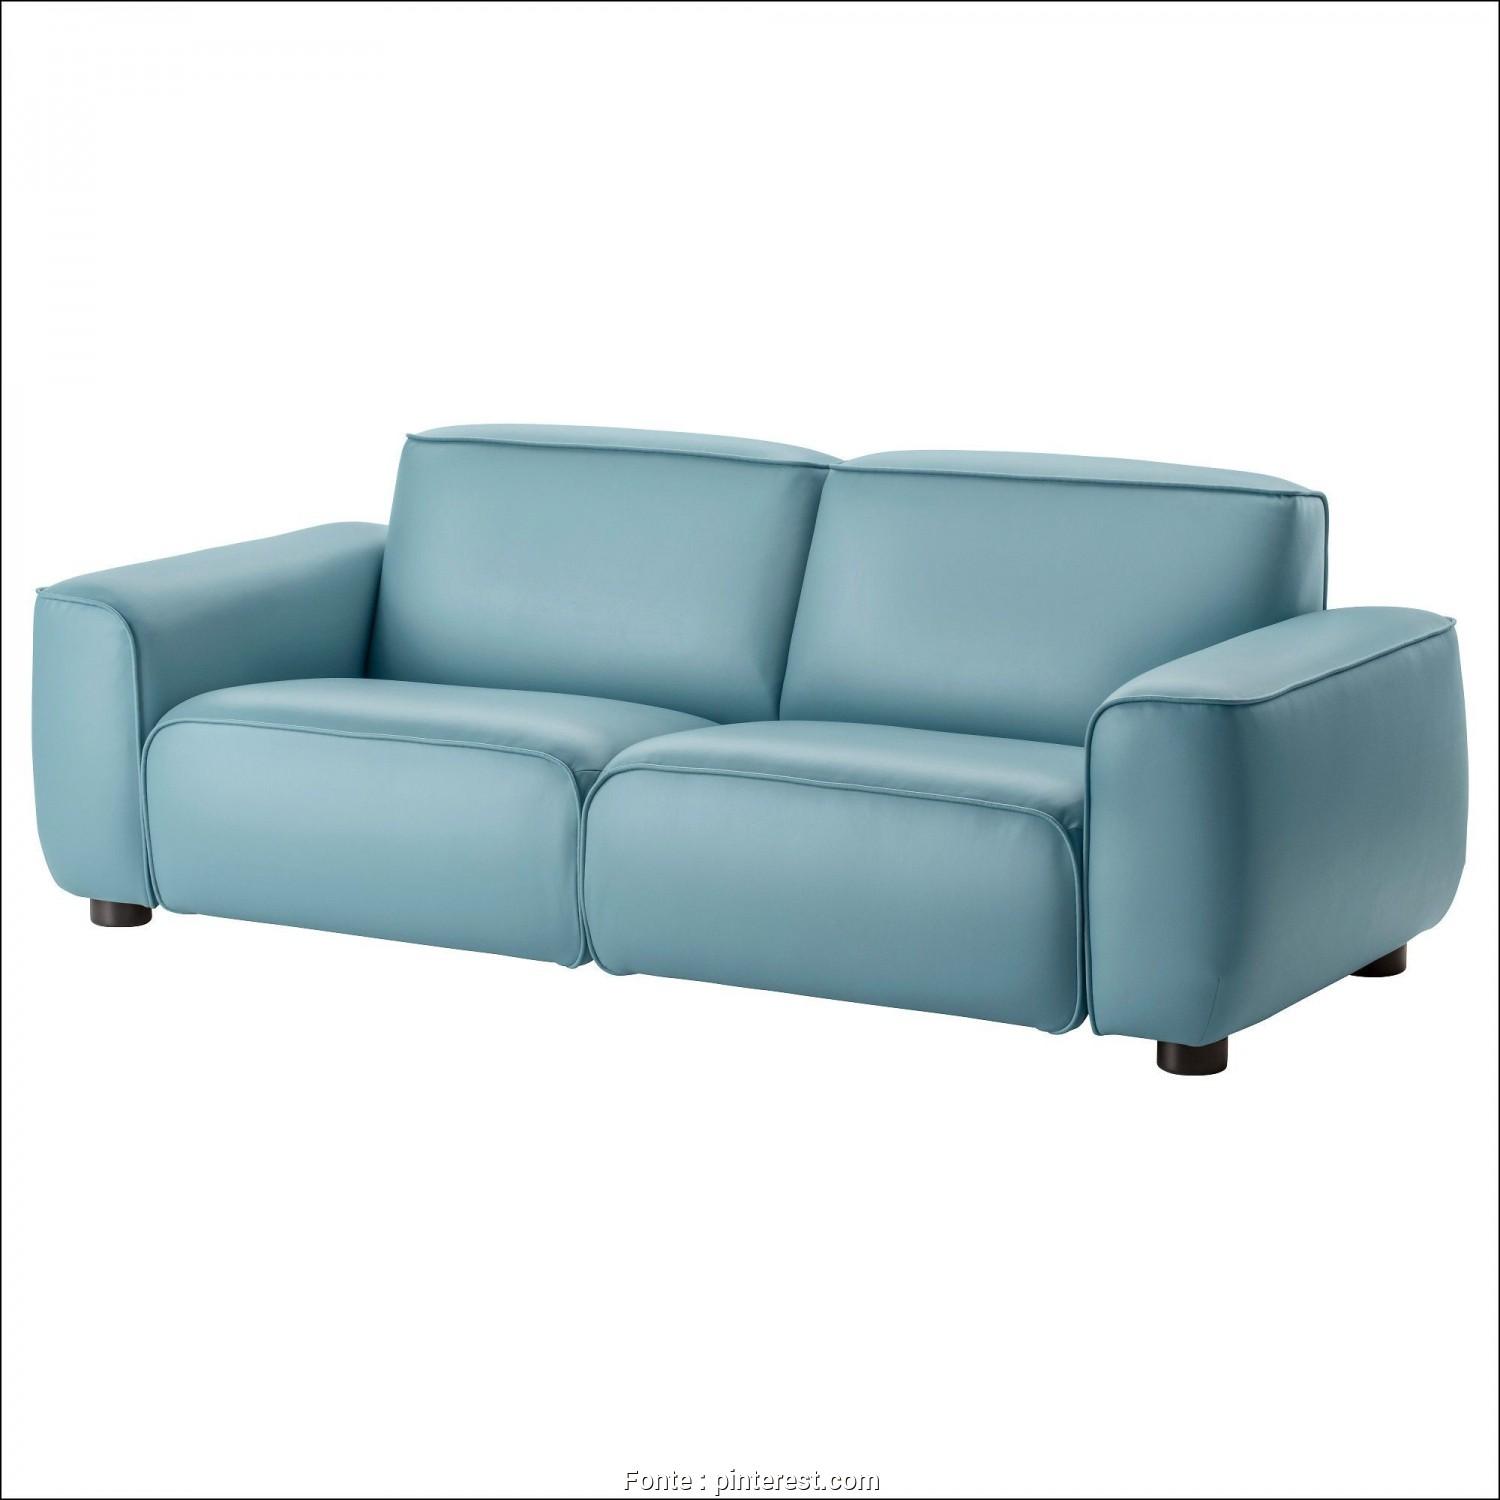 Ikea Divano Vintage, Bellissimo Blue Leather Sofa Ikea, Sofa, Pinterest, Sofa, Blue Leather